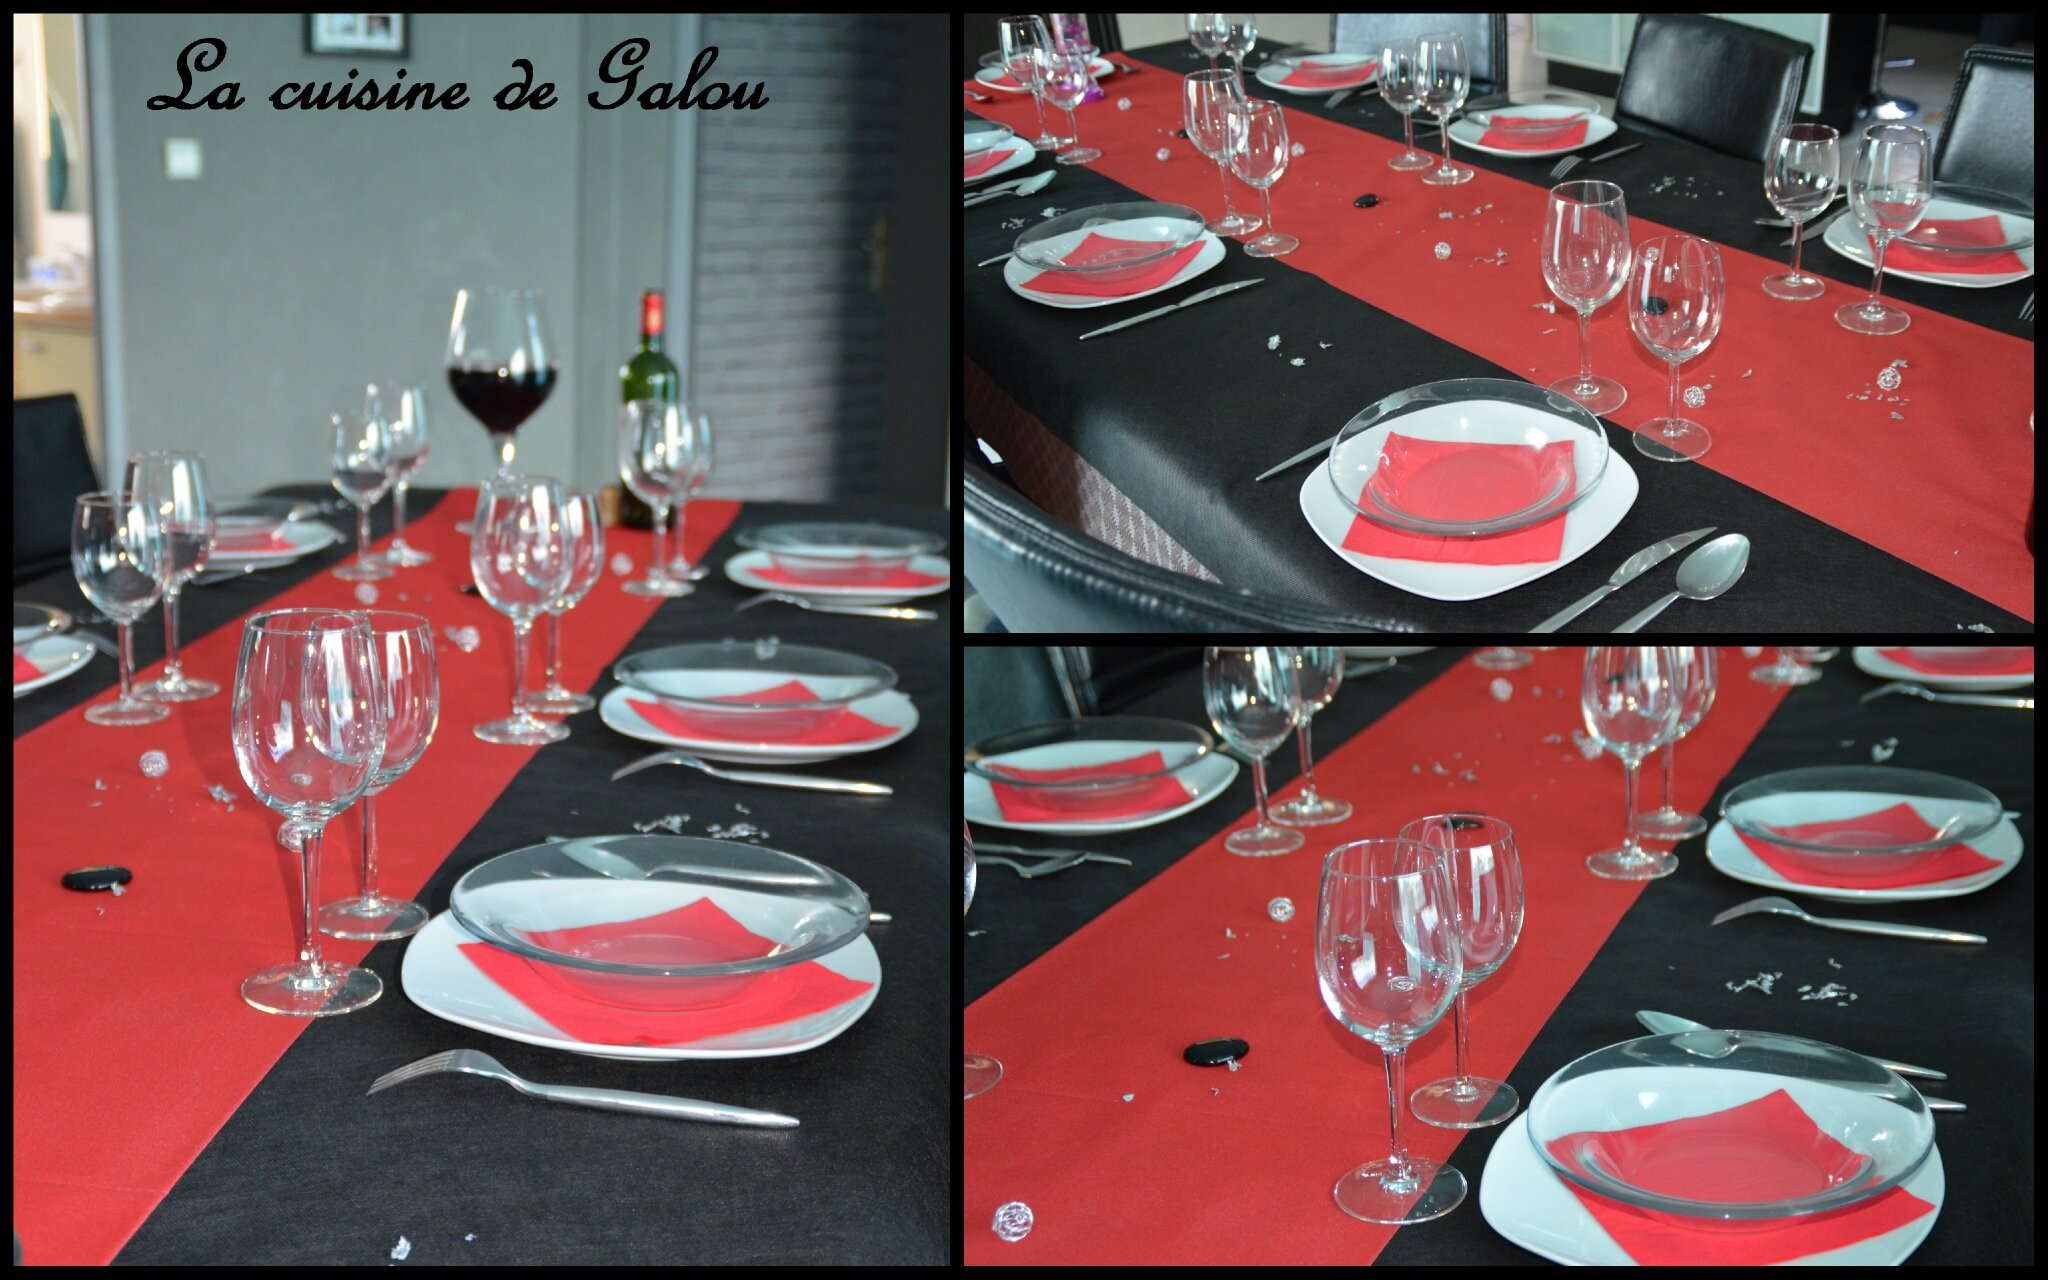 table de fetes noire rouge et blanche la cuisine de galou. Black Bedroom Furniture Sets. Home Design Ideas